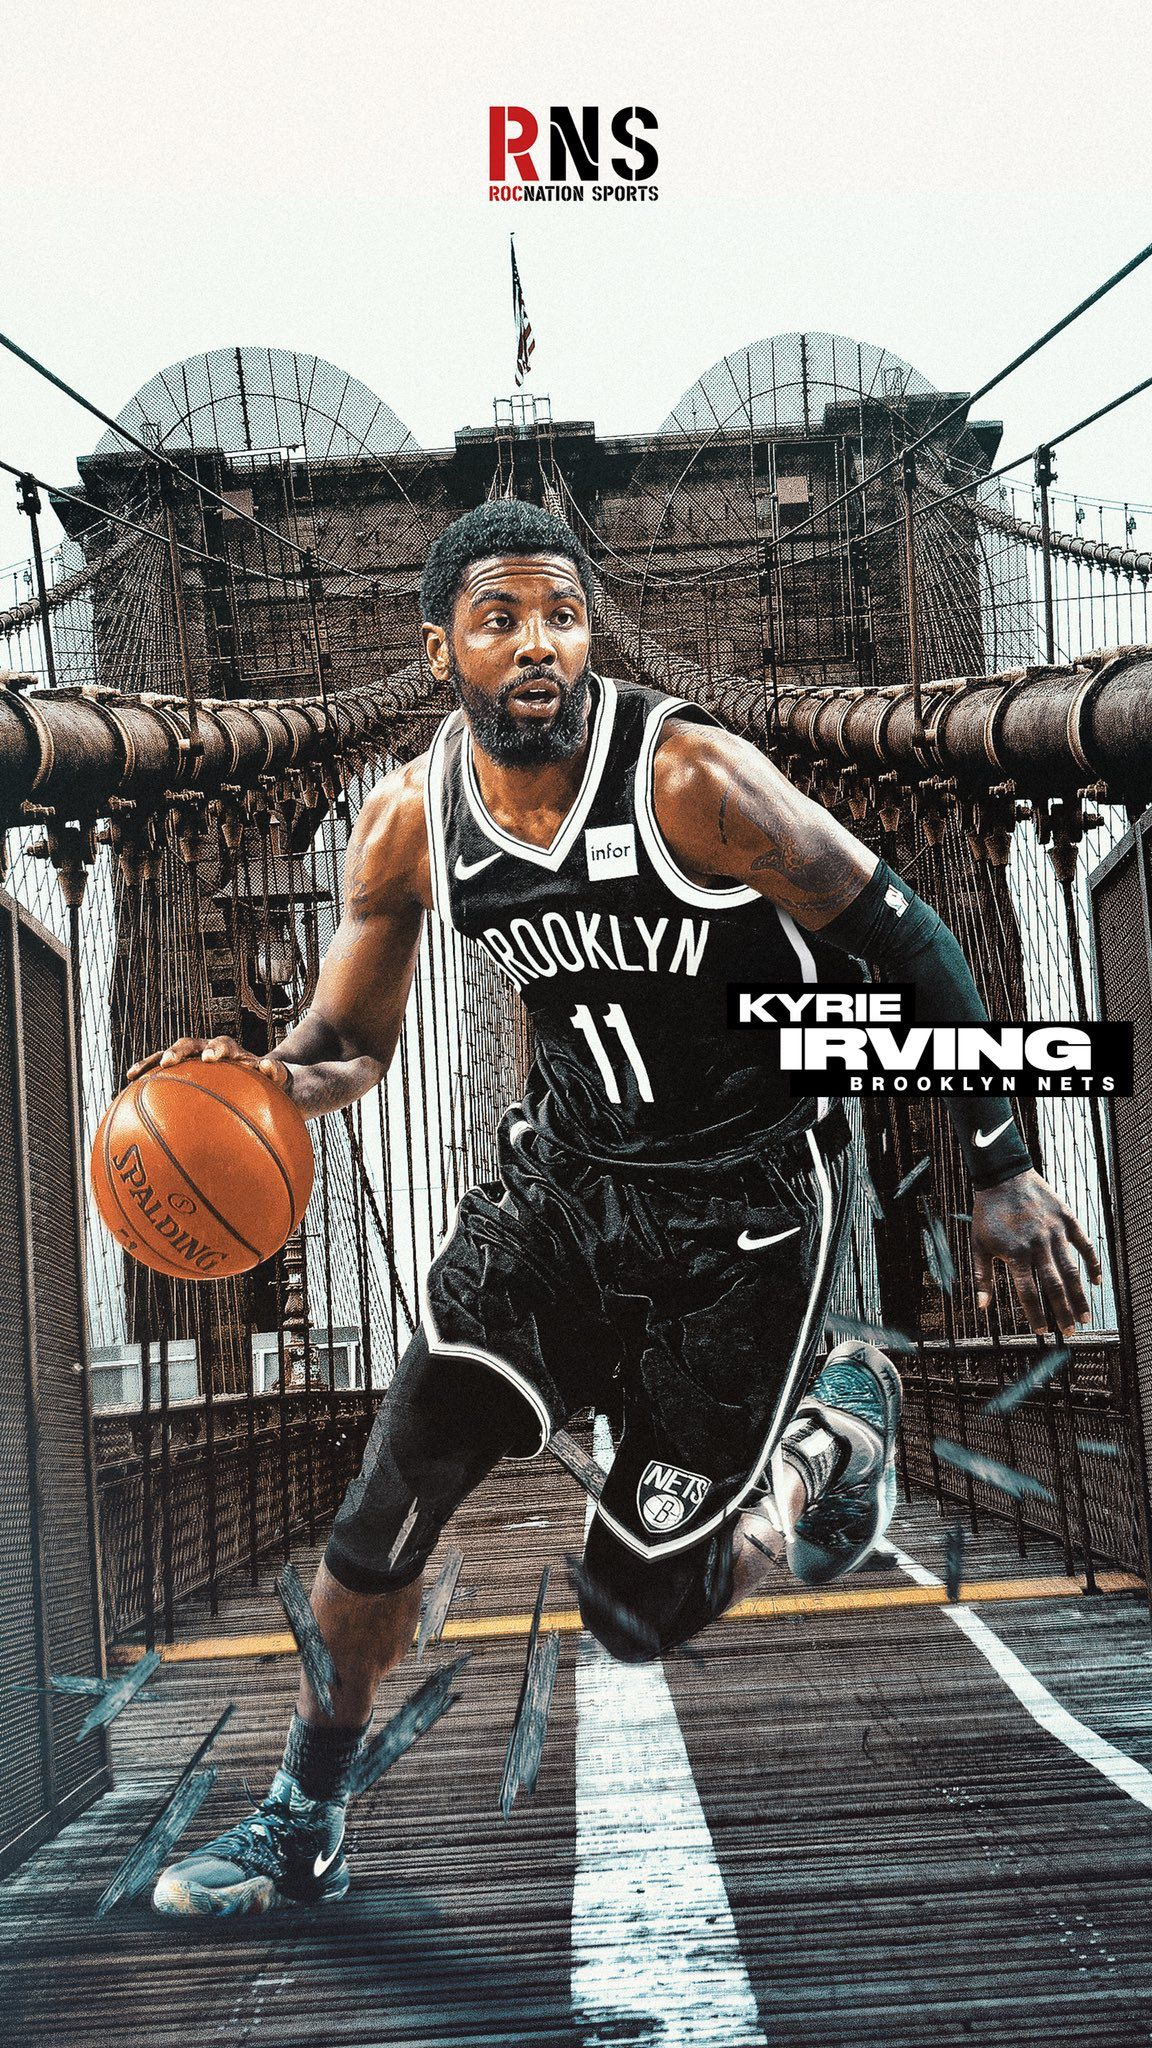 Kyrie Irving No Instagram Which One Is The Nicest 1 2 Or 3 Follow Kyriewallpaper For More Nba Pictures Mvp Basketball Nba Artwork